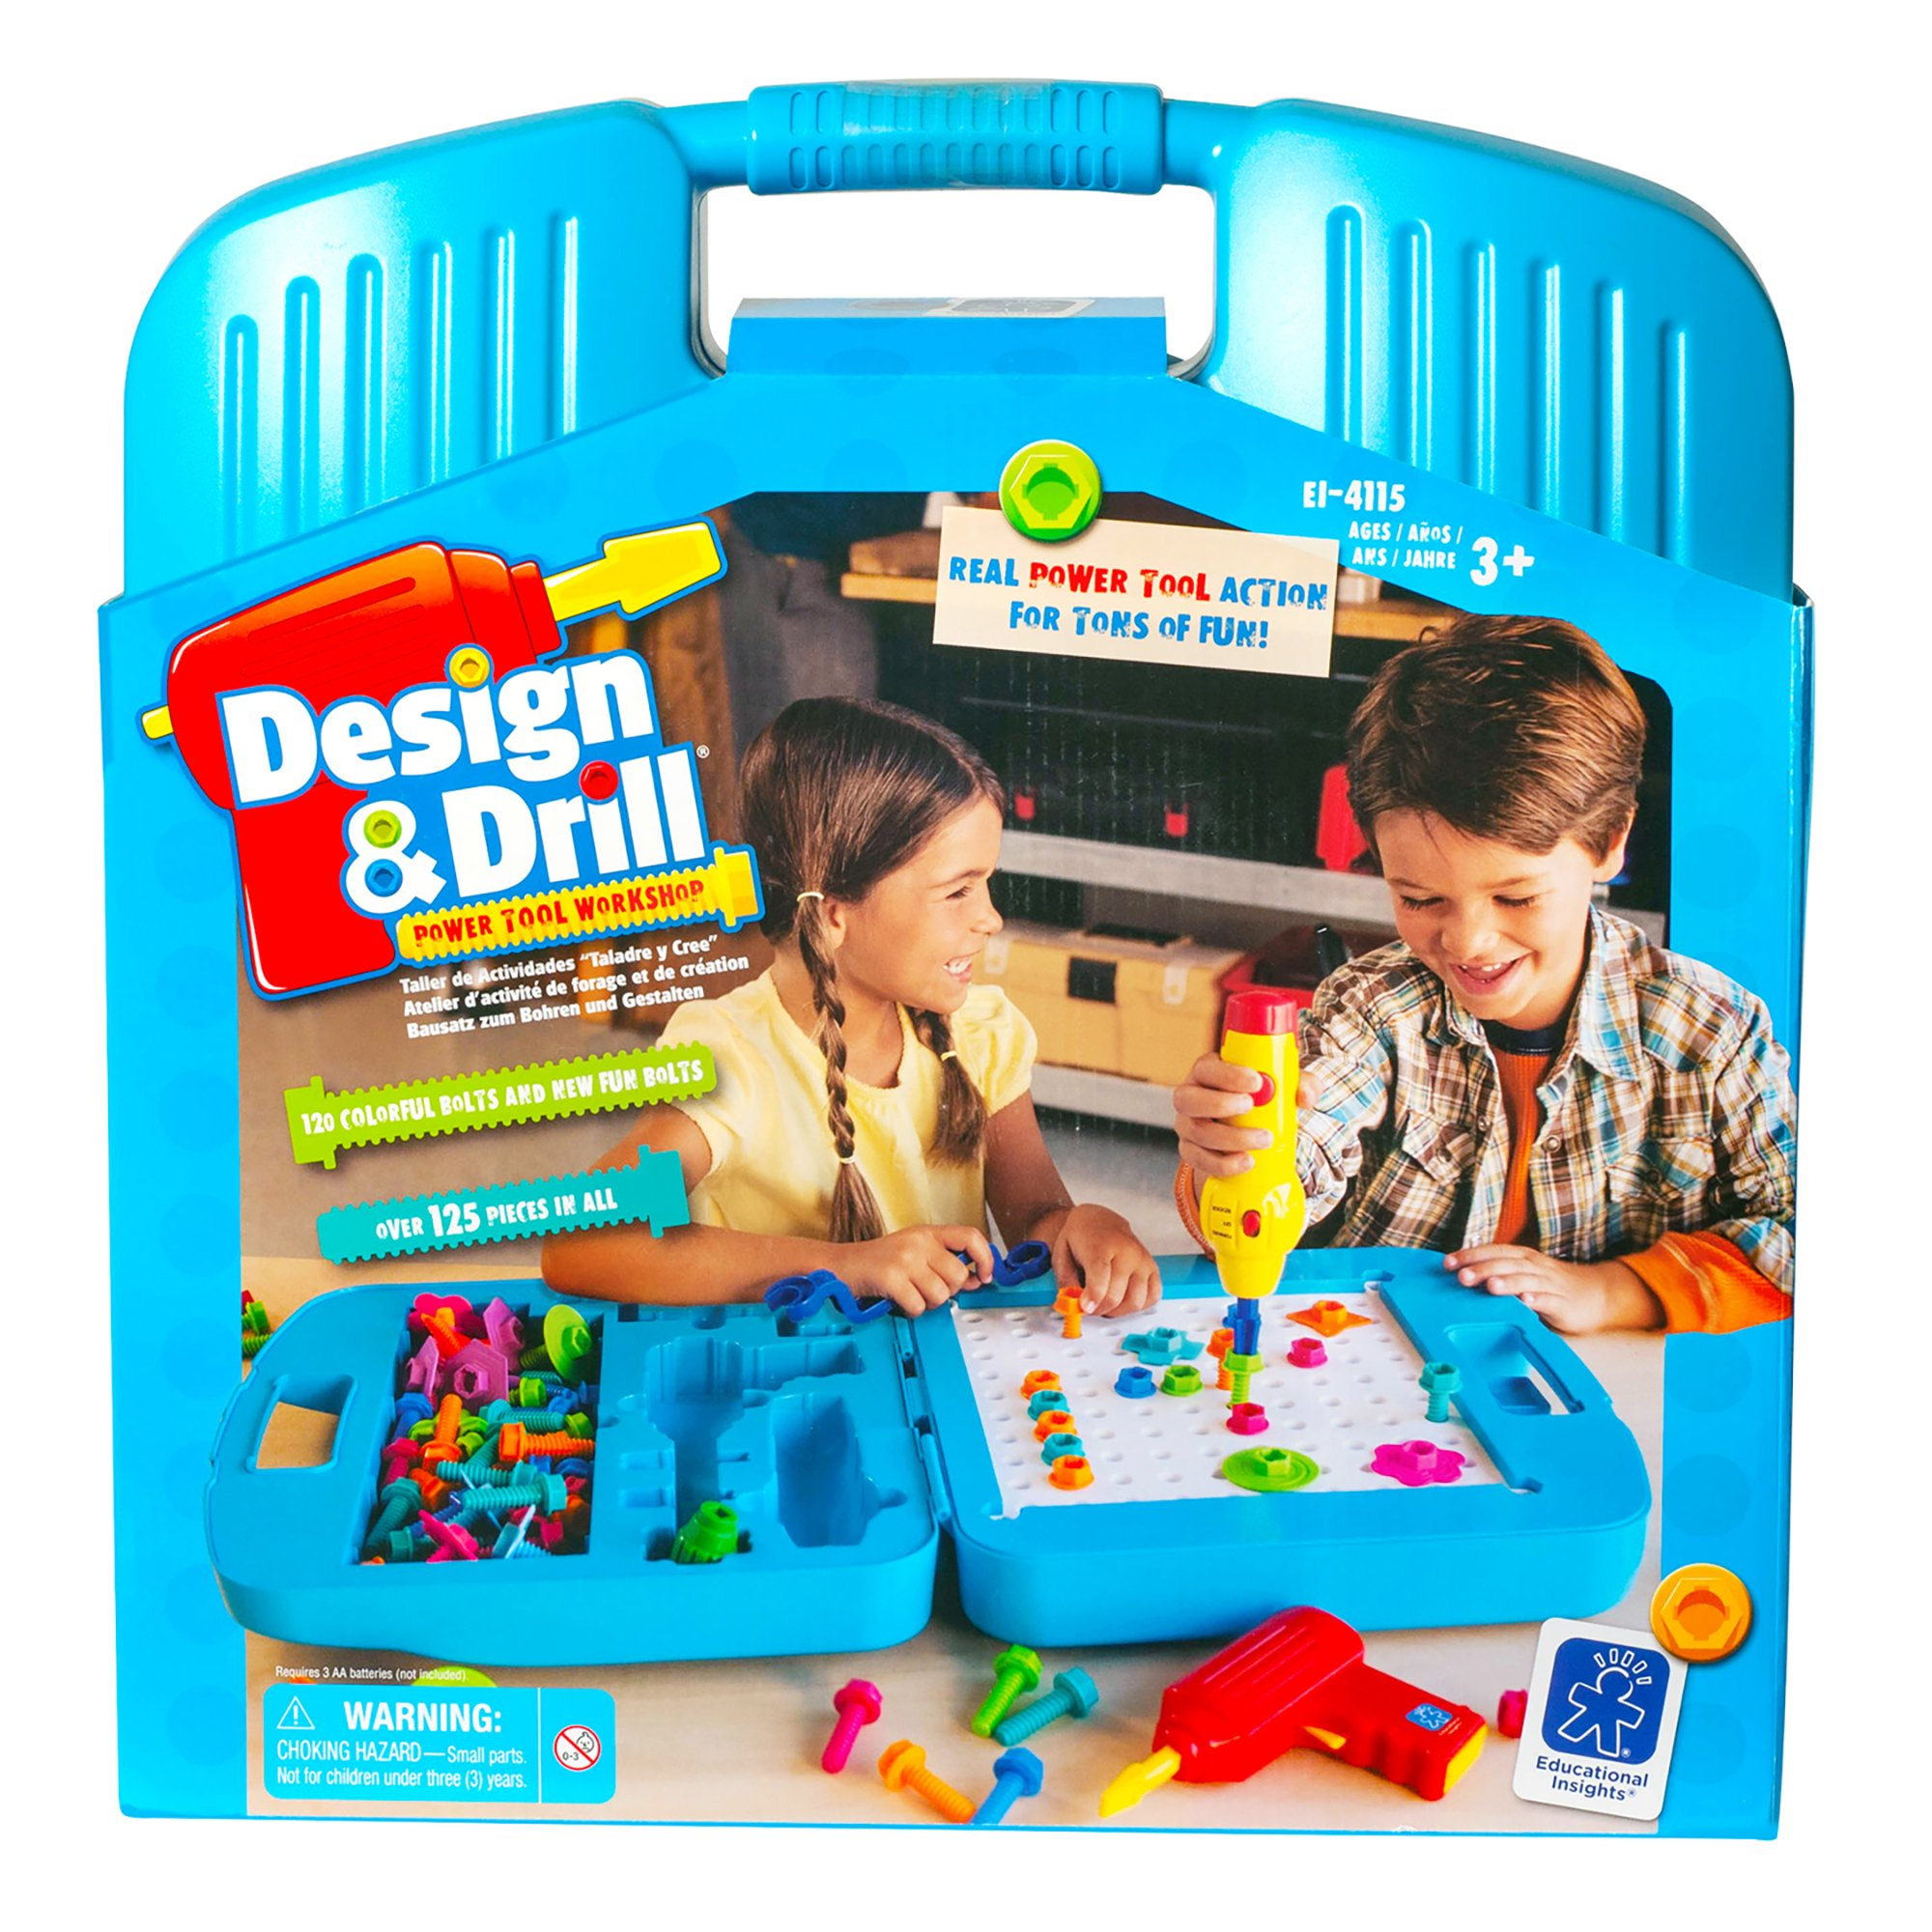 Educational Insights Design & Drill Power Tool Workshop - Drill Toy, STEM & Construction, Building Toy by Educational Insights (Image #1)